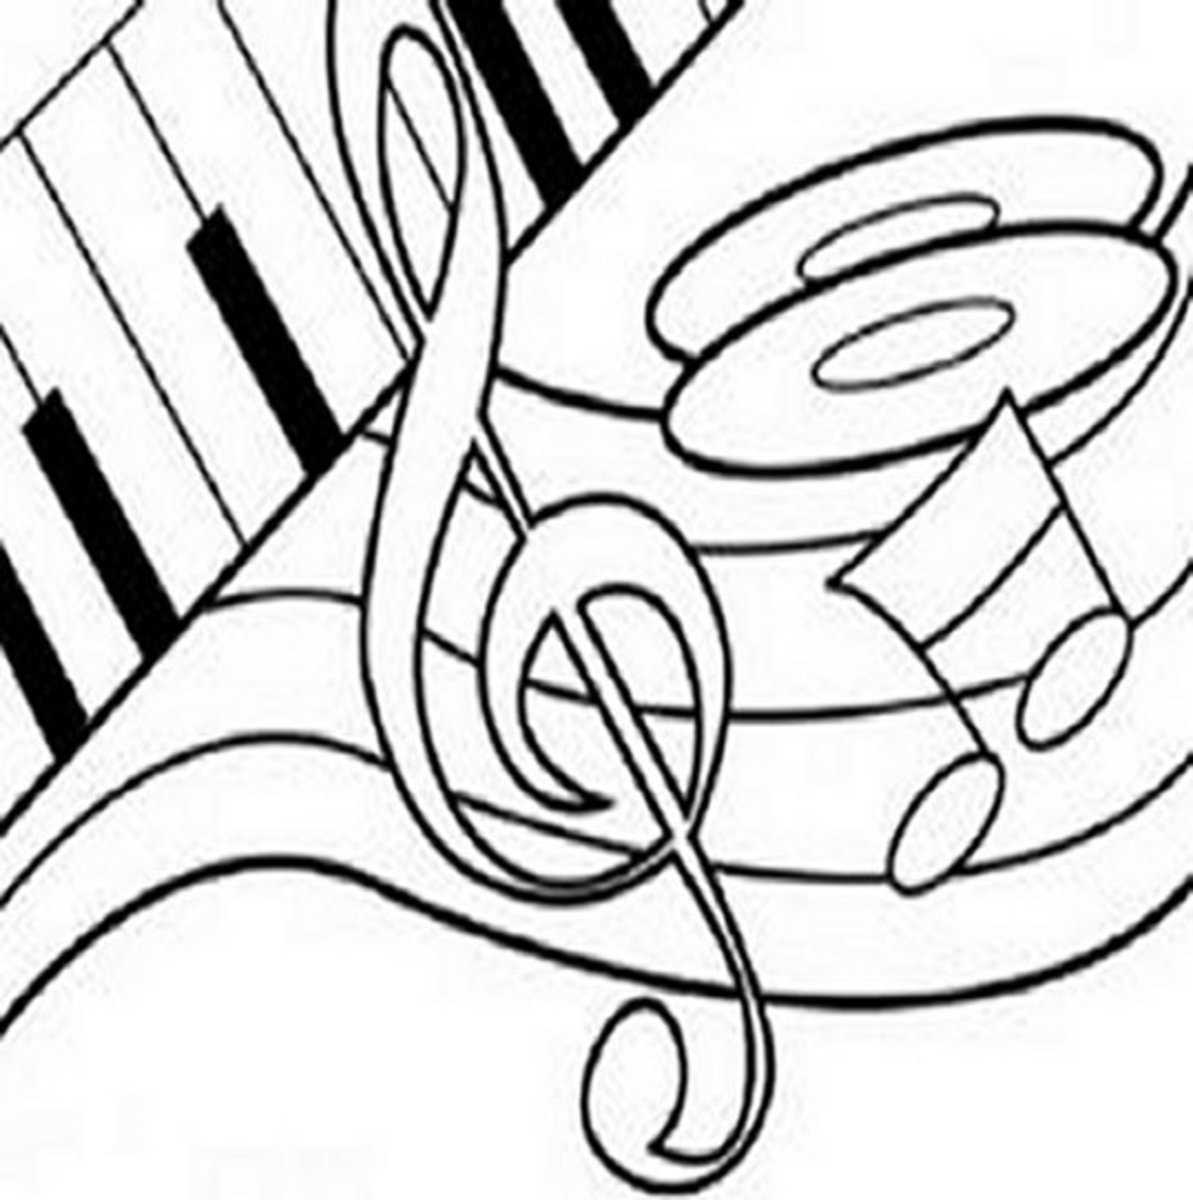 Musical Instruments Kids Coloring Pages Free Colouring Pictures to Print - Musical Notes